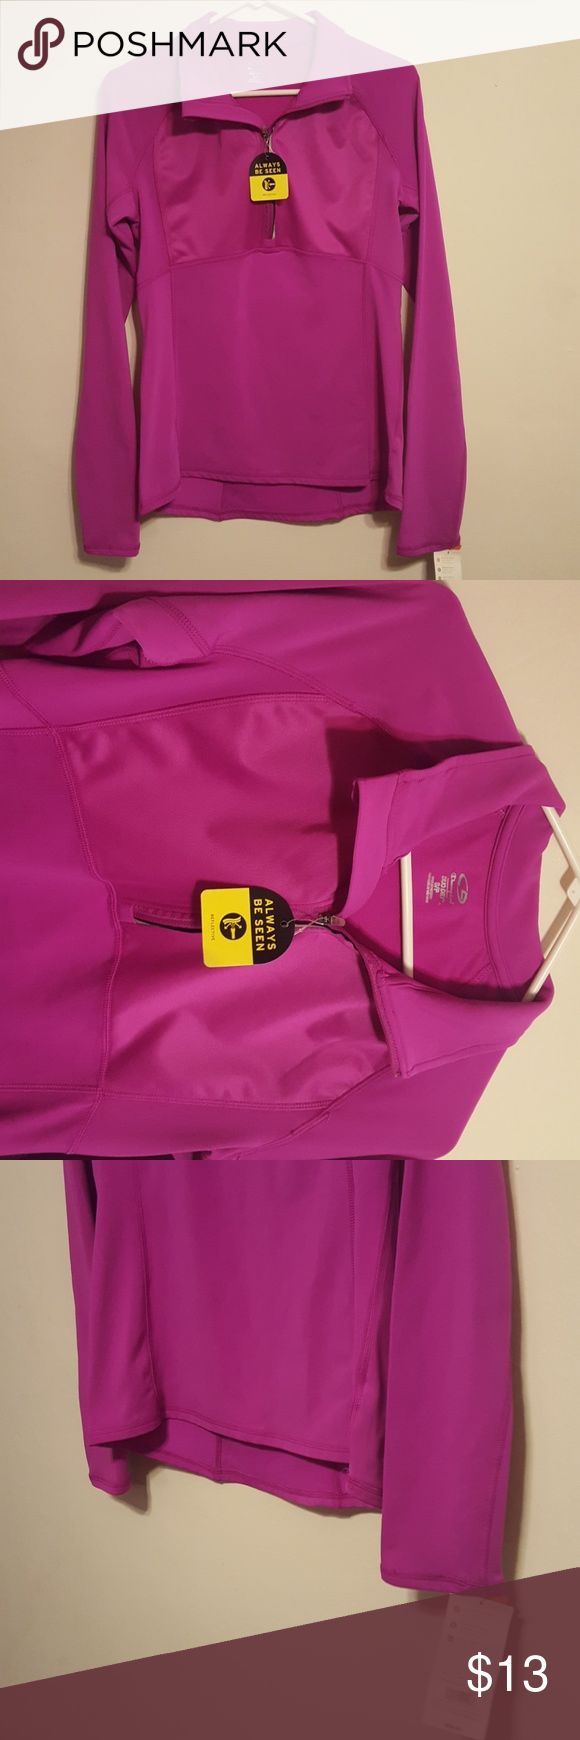 Champion Duo Dry Pink Women's Exercise Coat S/P Up for sale is a women's Champion 1/2 zip exercise Duo Dry coat / long sleeve shirt.  Size is S/P or Small / Petite.  Raspberry shake / pink in color.  Great for cold weather workouts.  New with tags / NWT.  Just been sitting in a closet and needs a new home.  Comes from a smoke free home. Champion Jackets & Coats